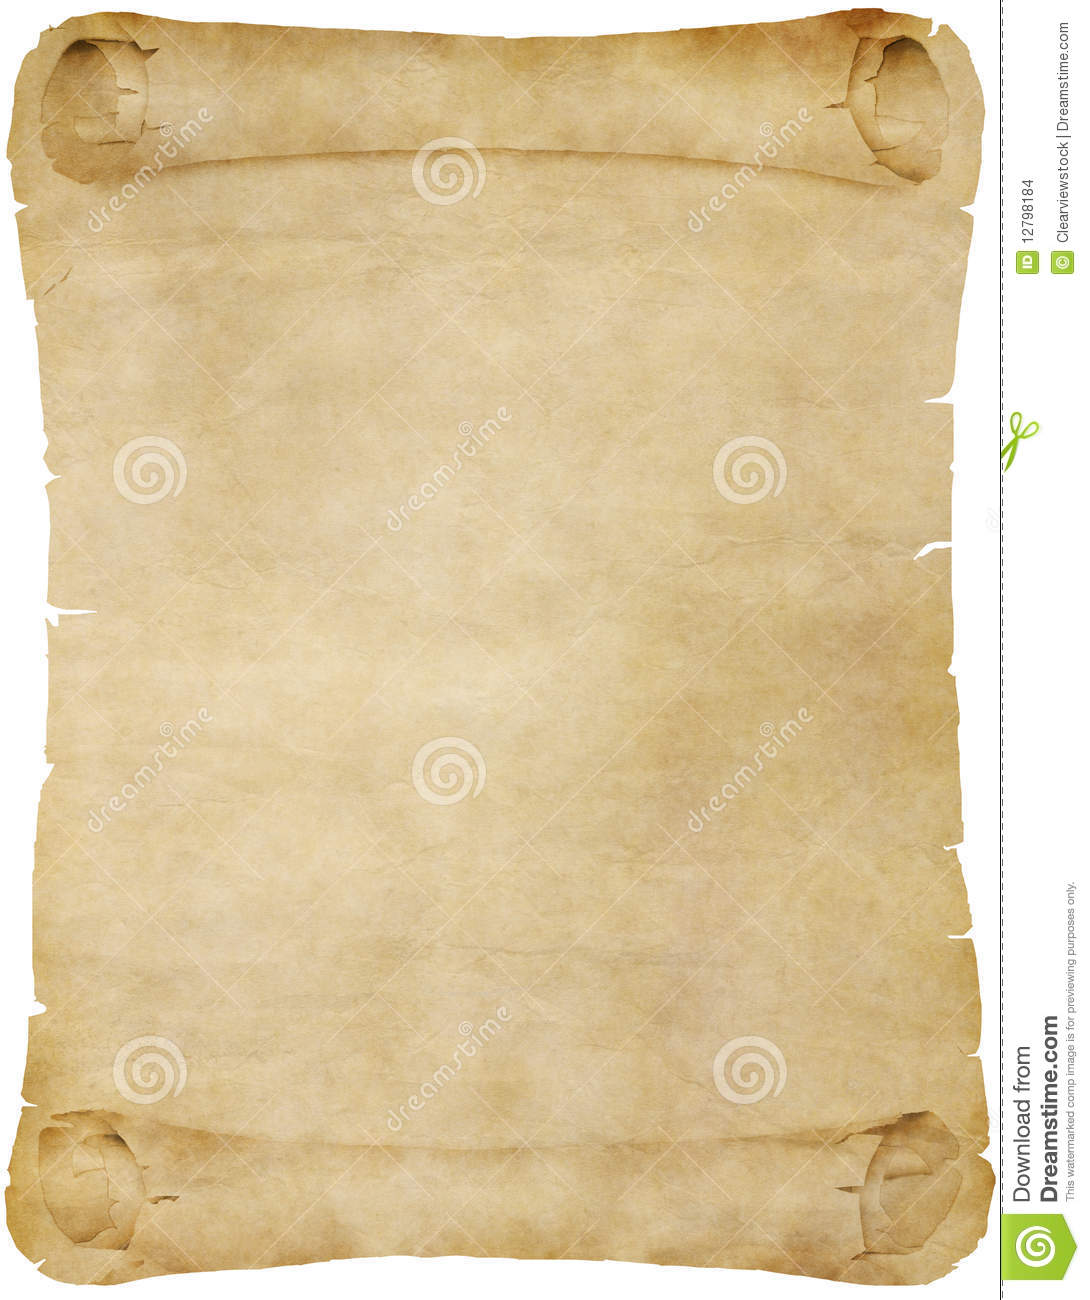 old vintage paper or parchment scroll stock vector illustration of